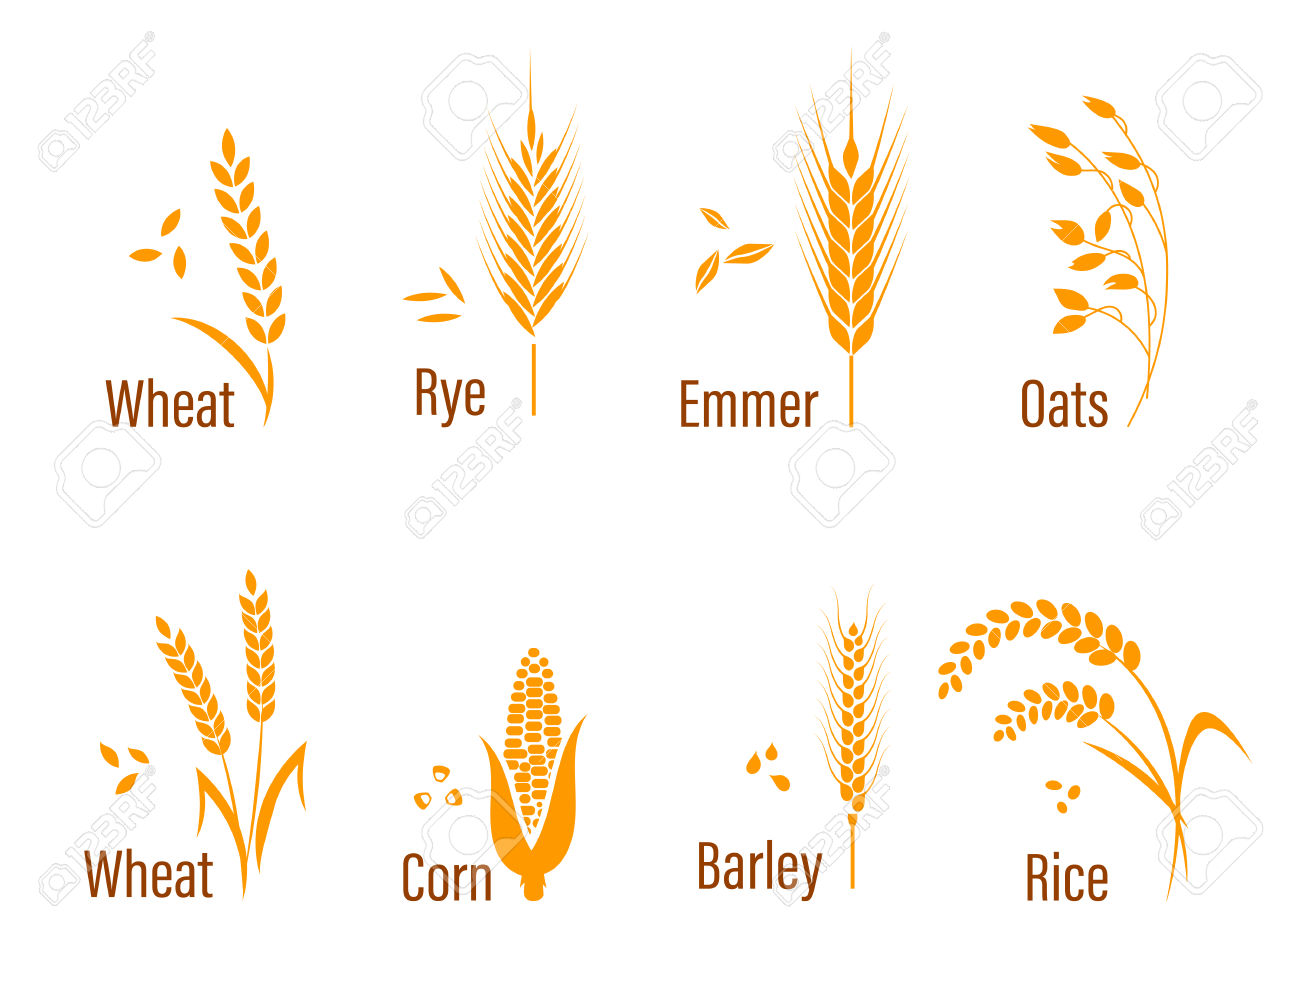 Oats free on dumielauxepices. Grains clipart